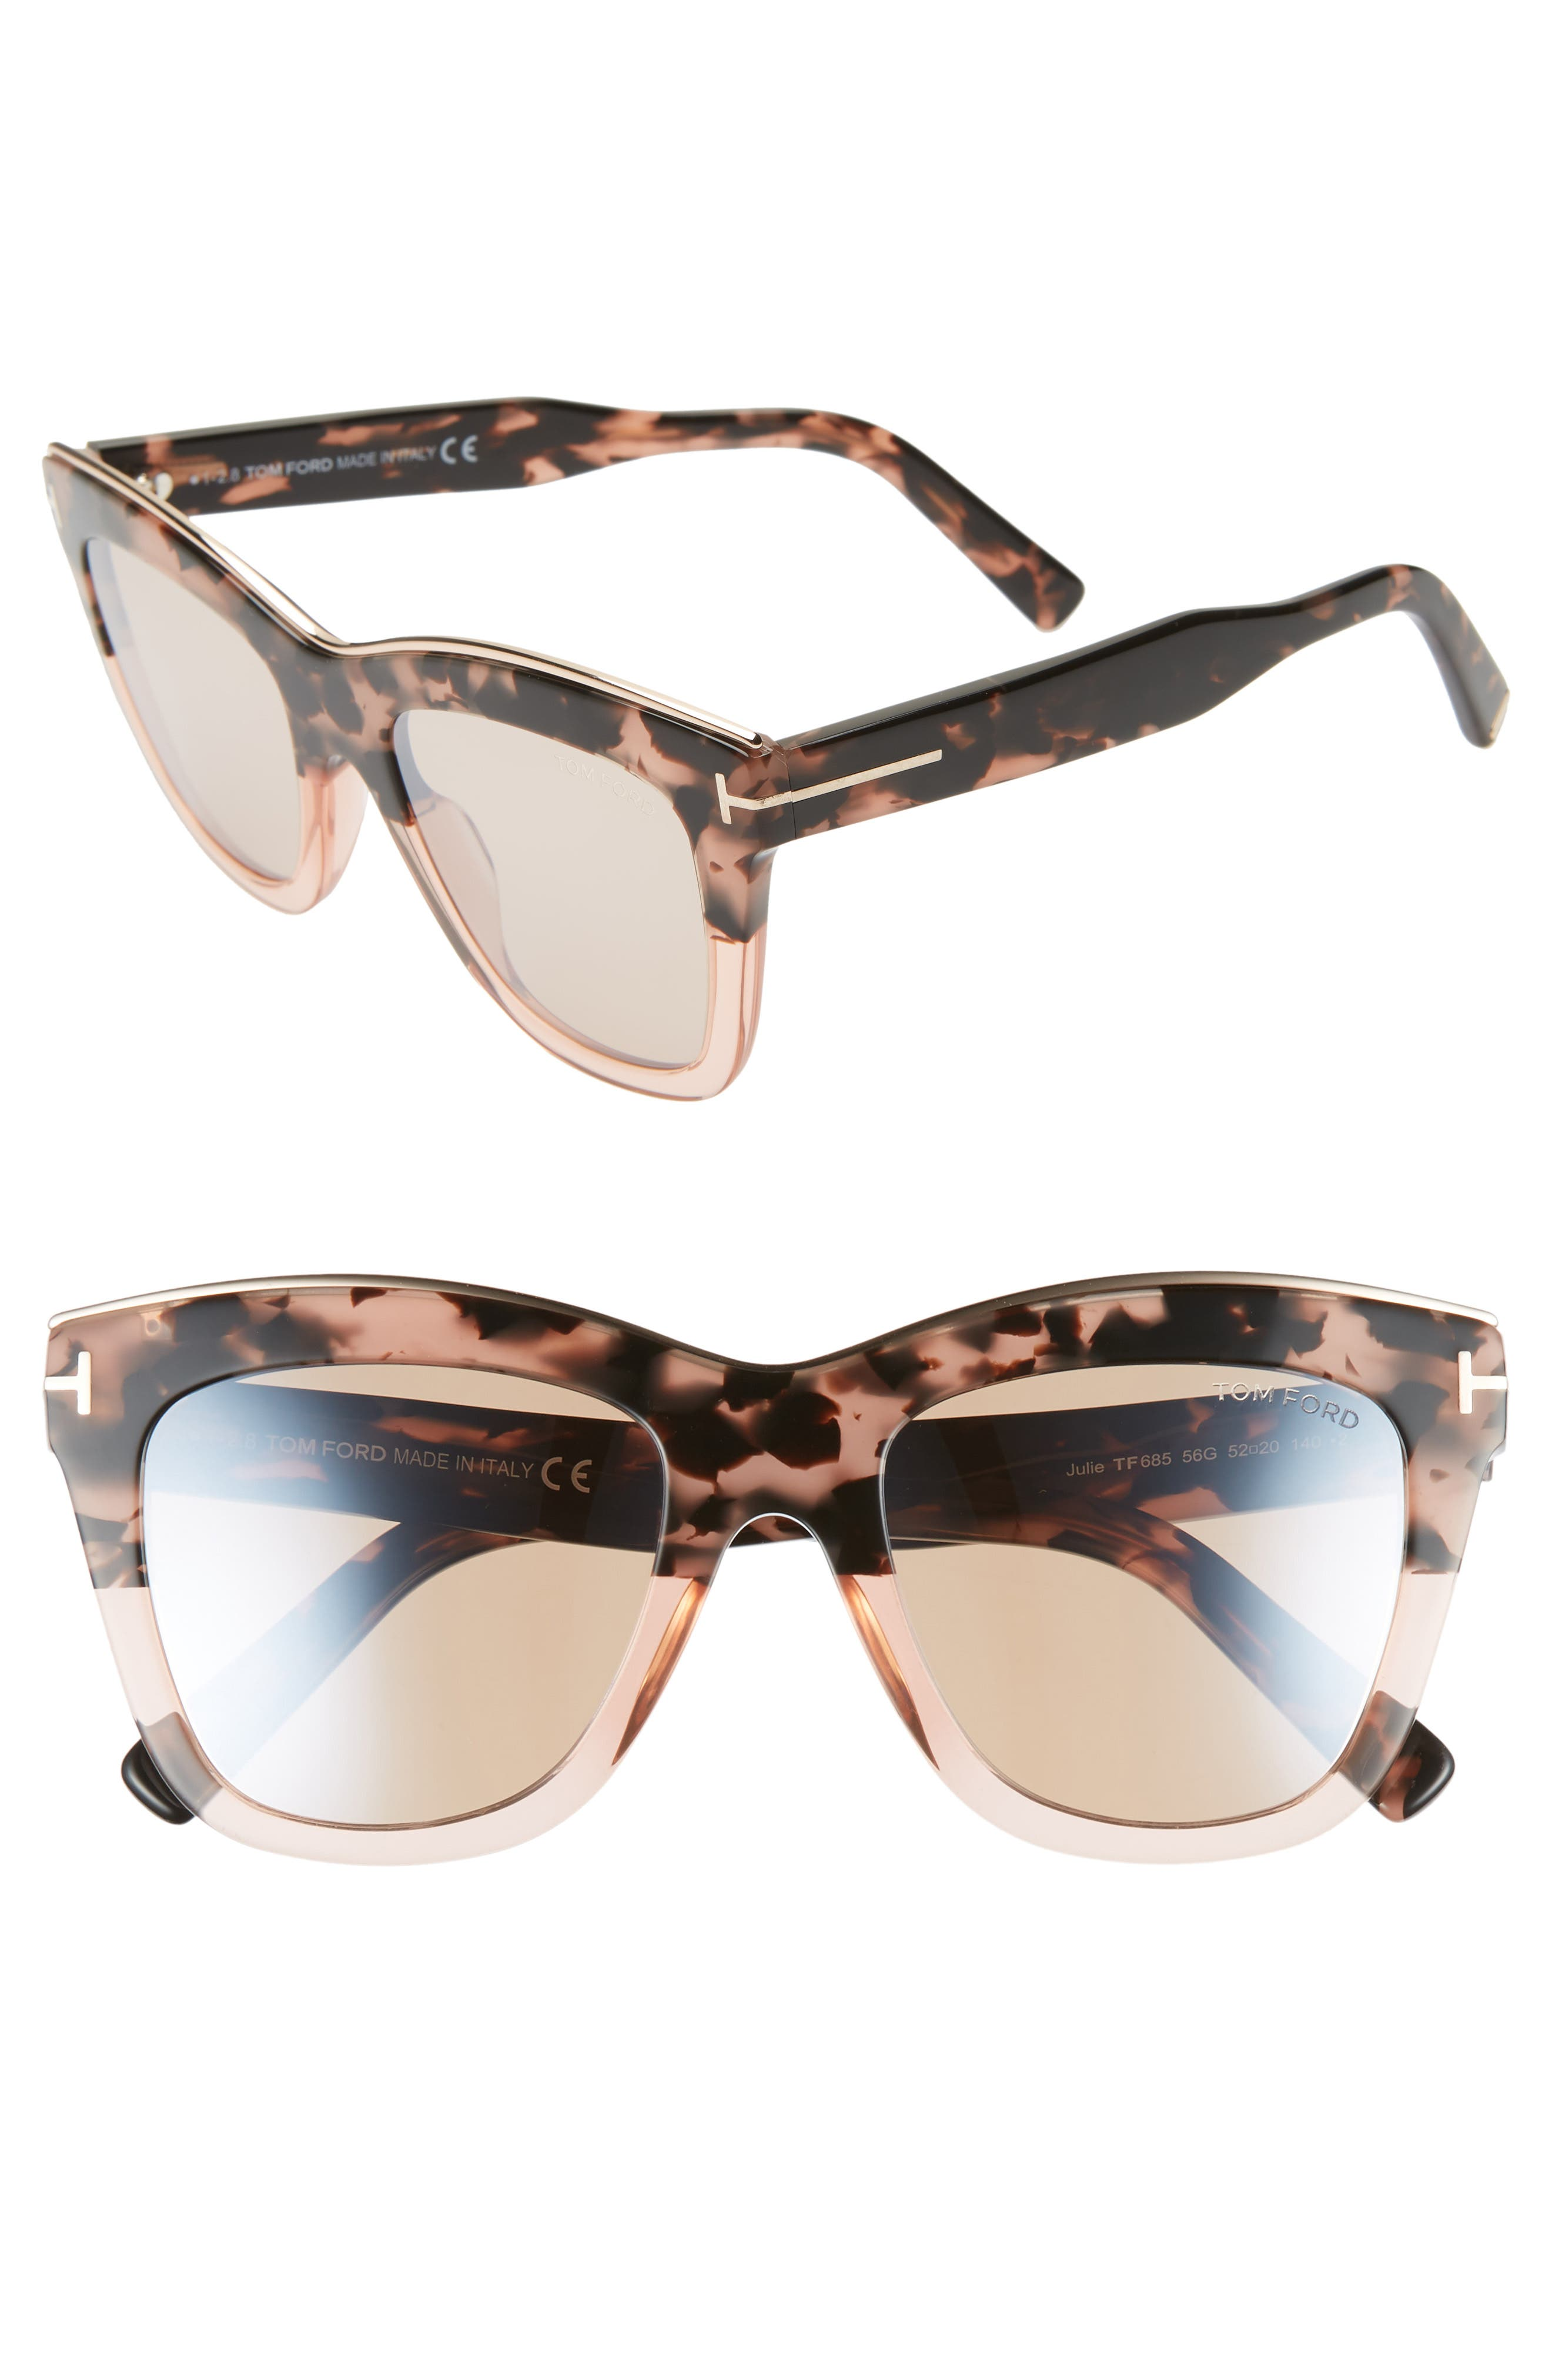 Tom Ford Julie 52Mm Sunglasses - Pink Havana/ Champagne